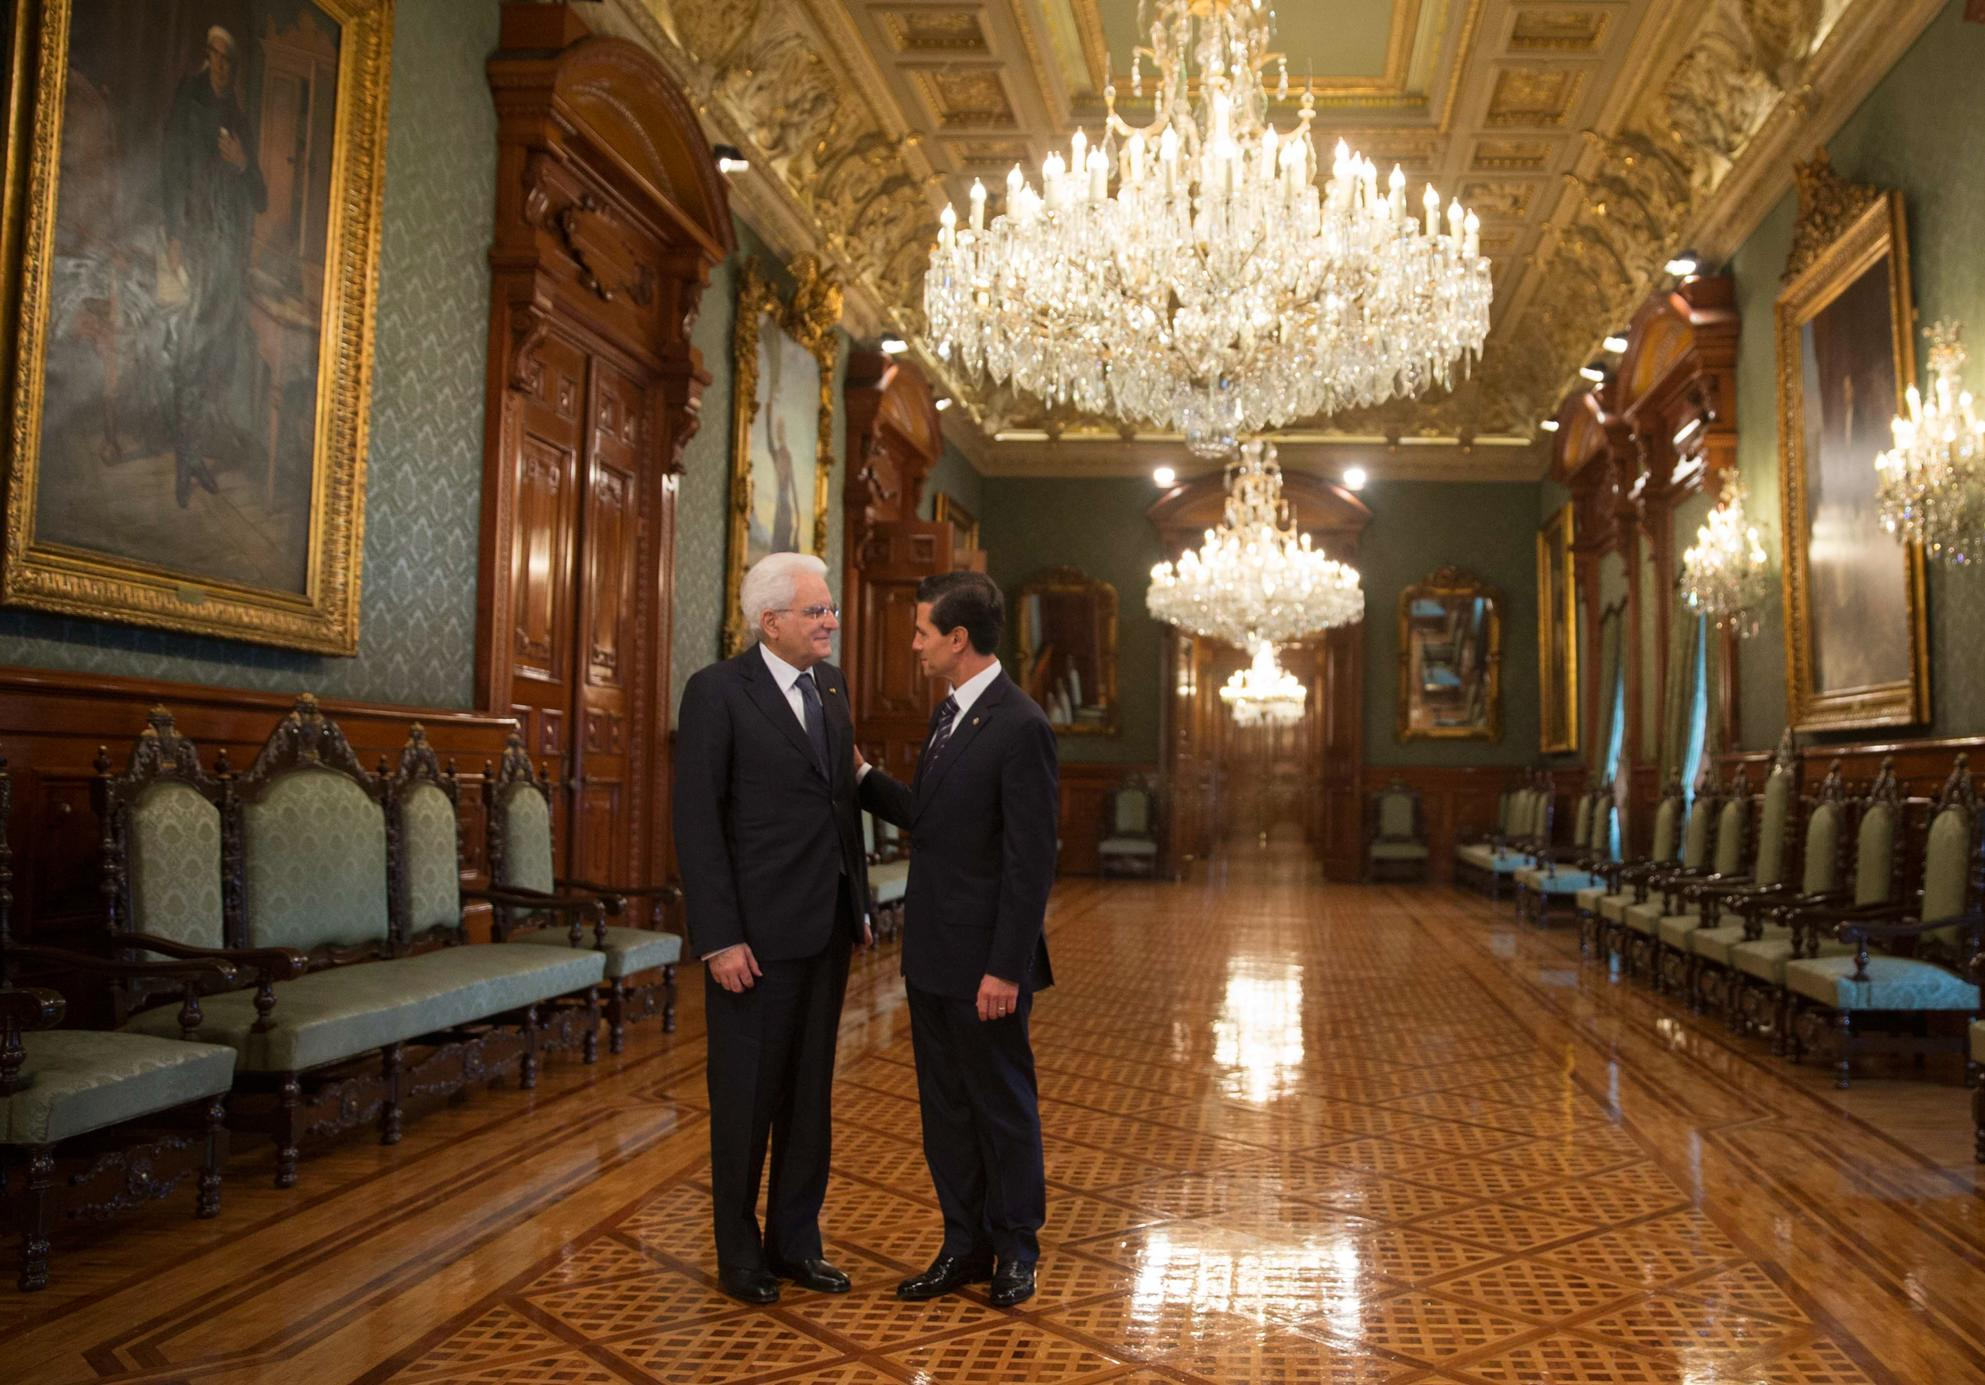 President Peña Nieto also expressed his solidarity with the Italian people, particularly with the relatives of the citizens of that country who lost their lives in the terrorist attack in Bangladesh a few days ago.